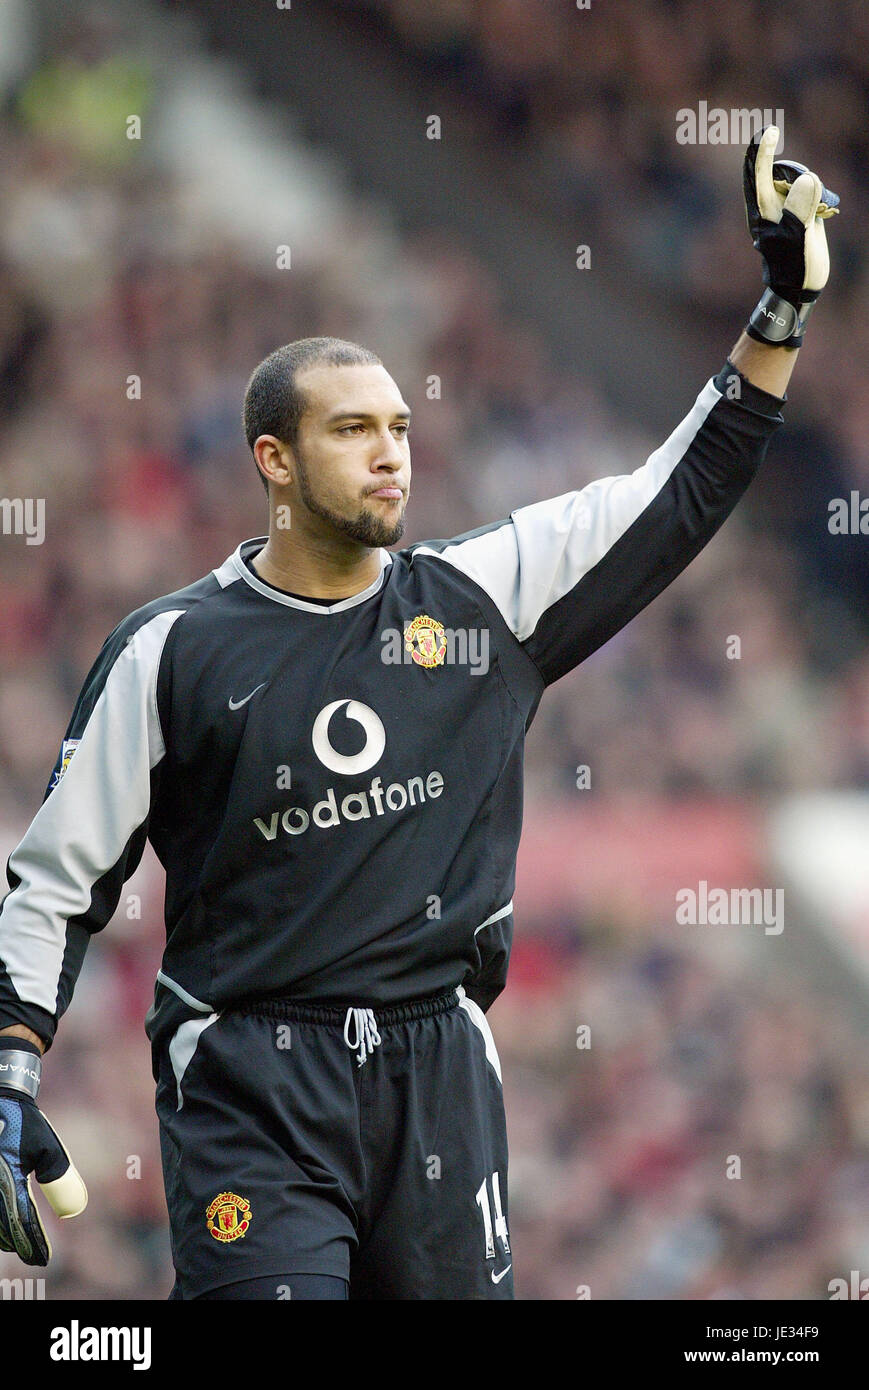 TIM HOWARD MANCHESTER UNITED FC OLD TRAFFORD MANCHESTER ENGLAND 13 December  2003 Stock Photo - Alamy